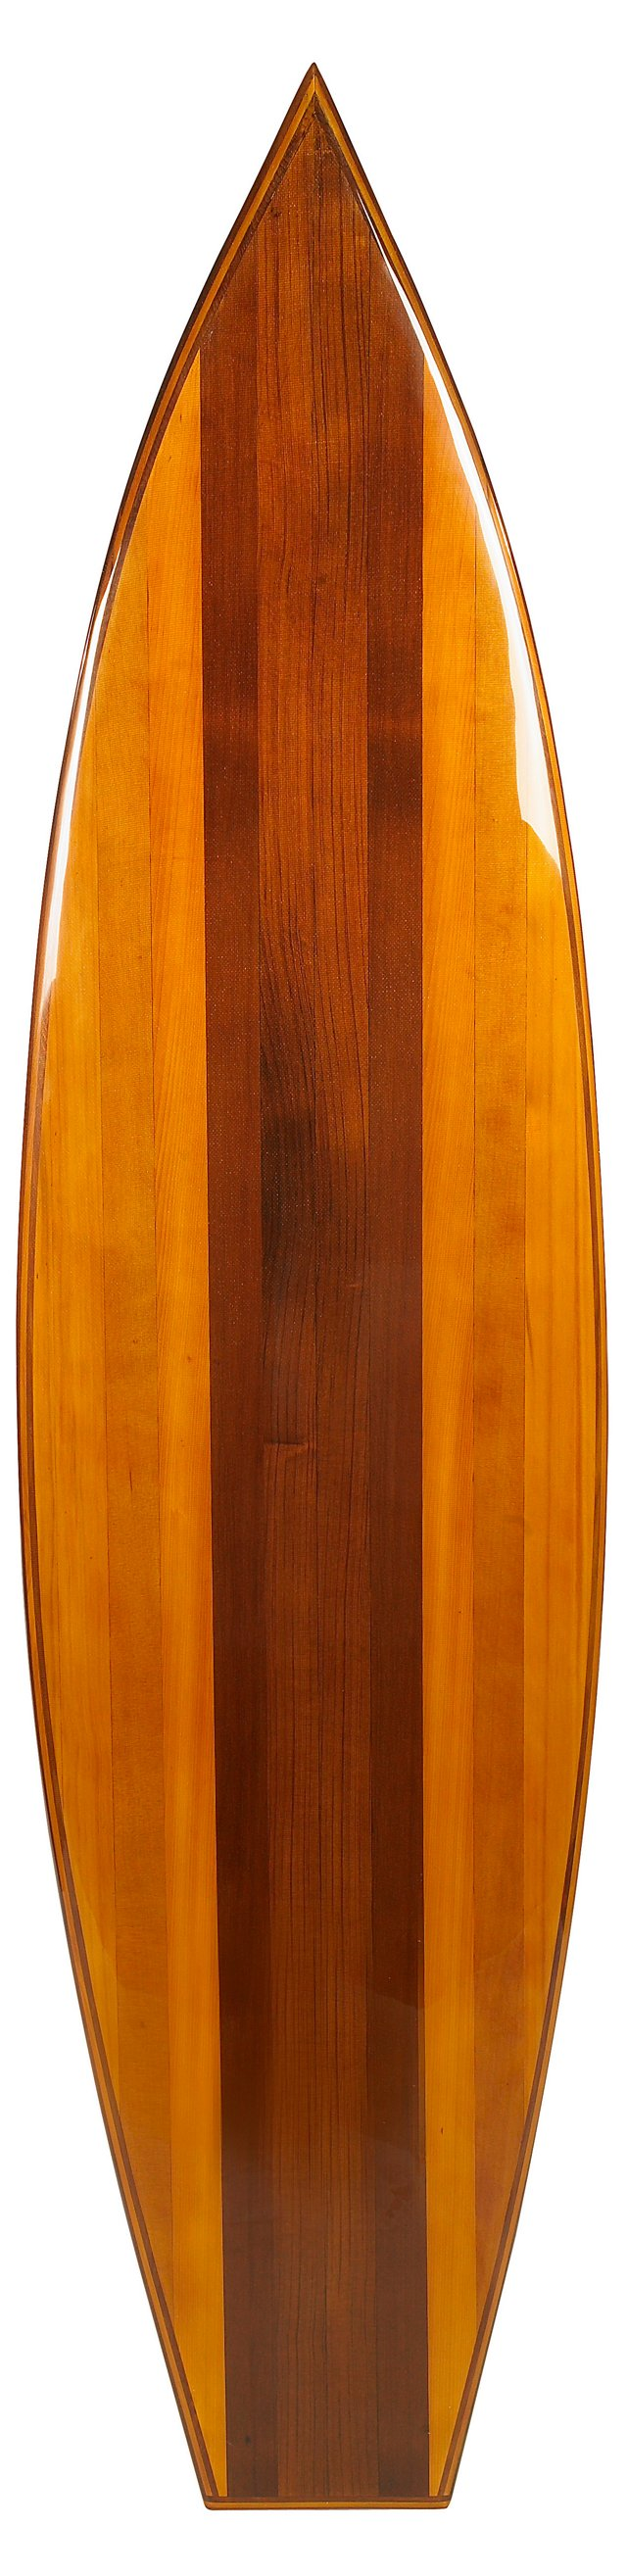 "77"" Waikiki Surfboard, Brown"